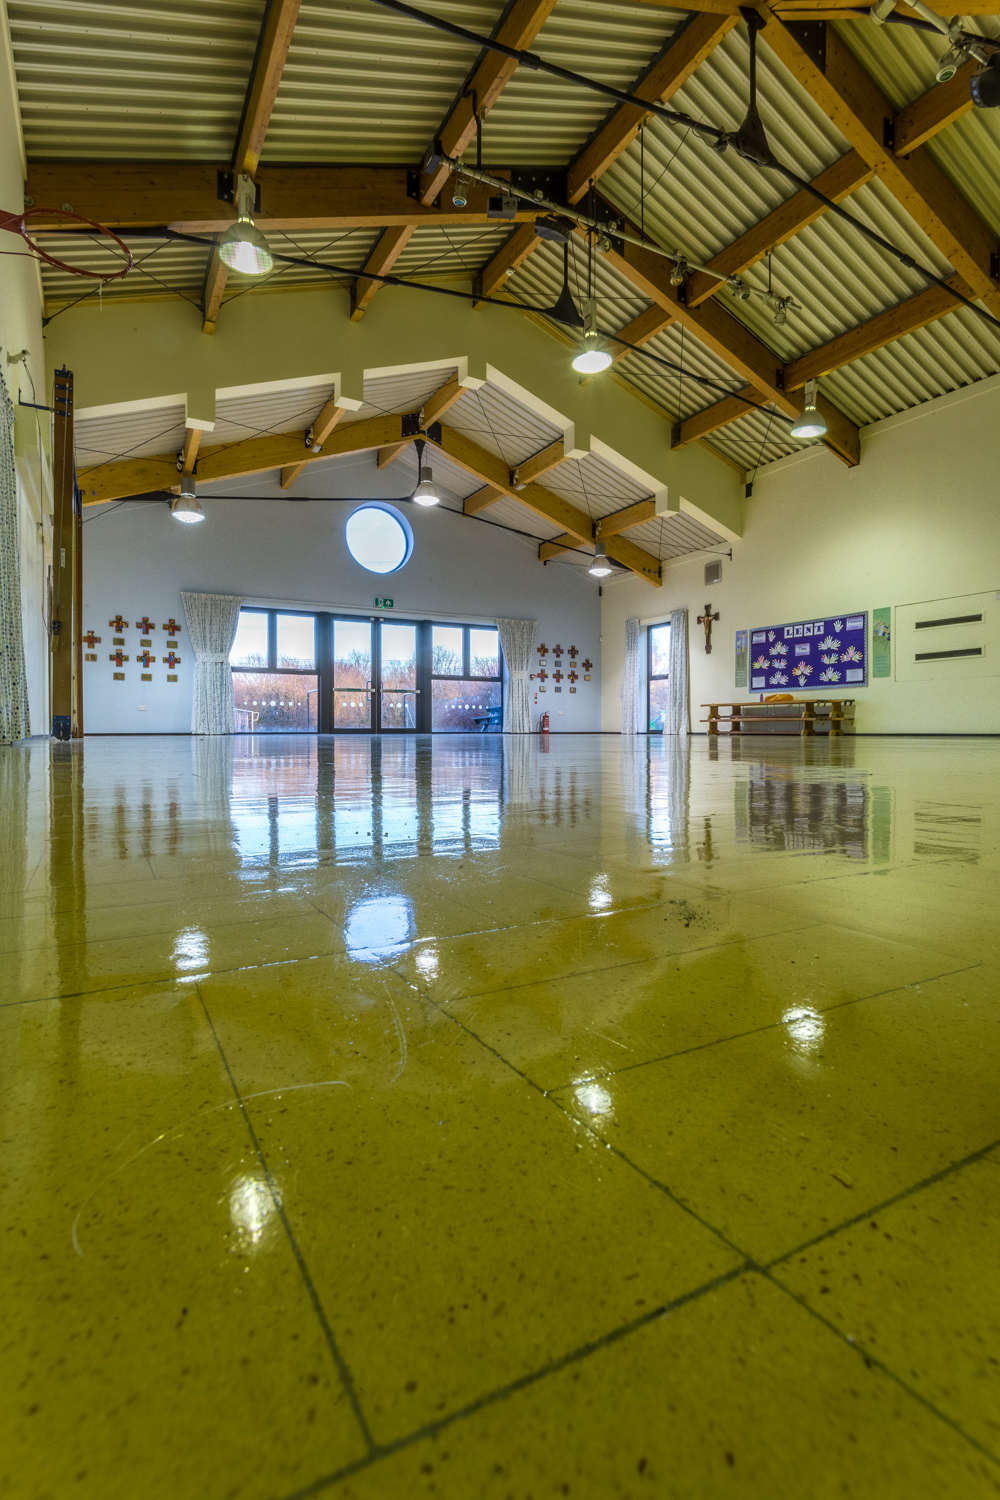 School hall extension by interior photographer Rick McEvoy